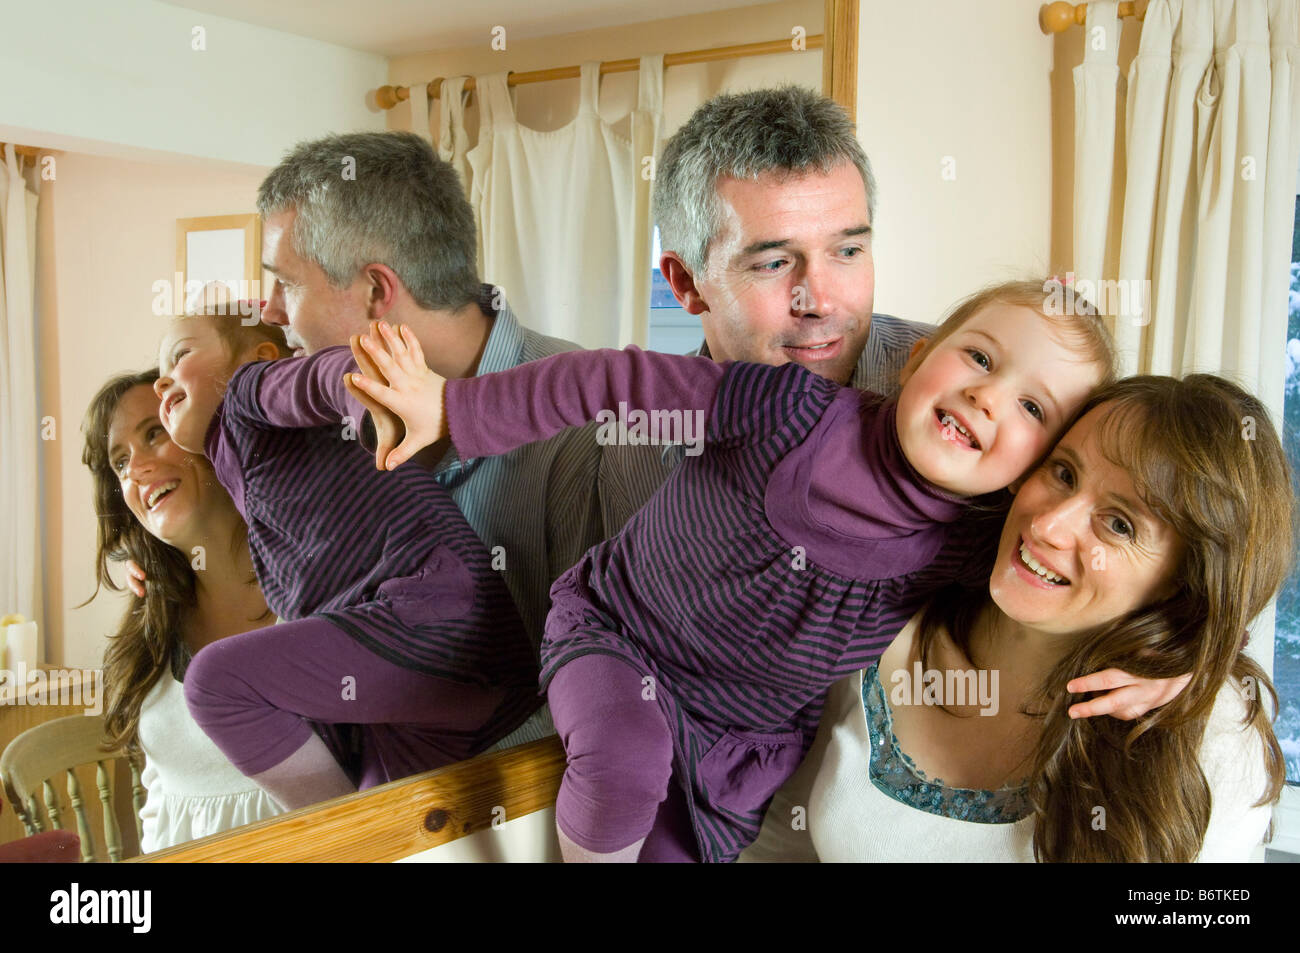 A scene of family life as parents pose with a wriggling toddler. Stock Photo